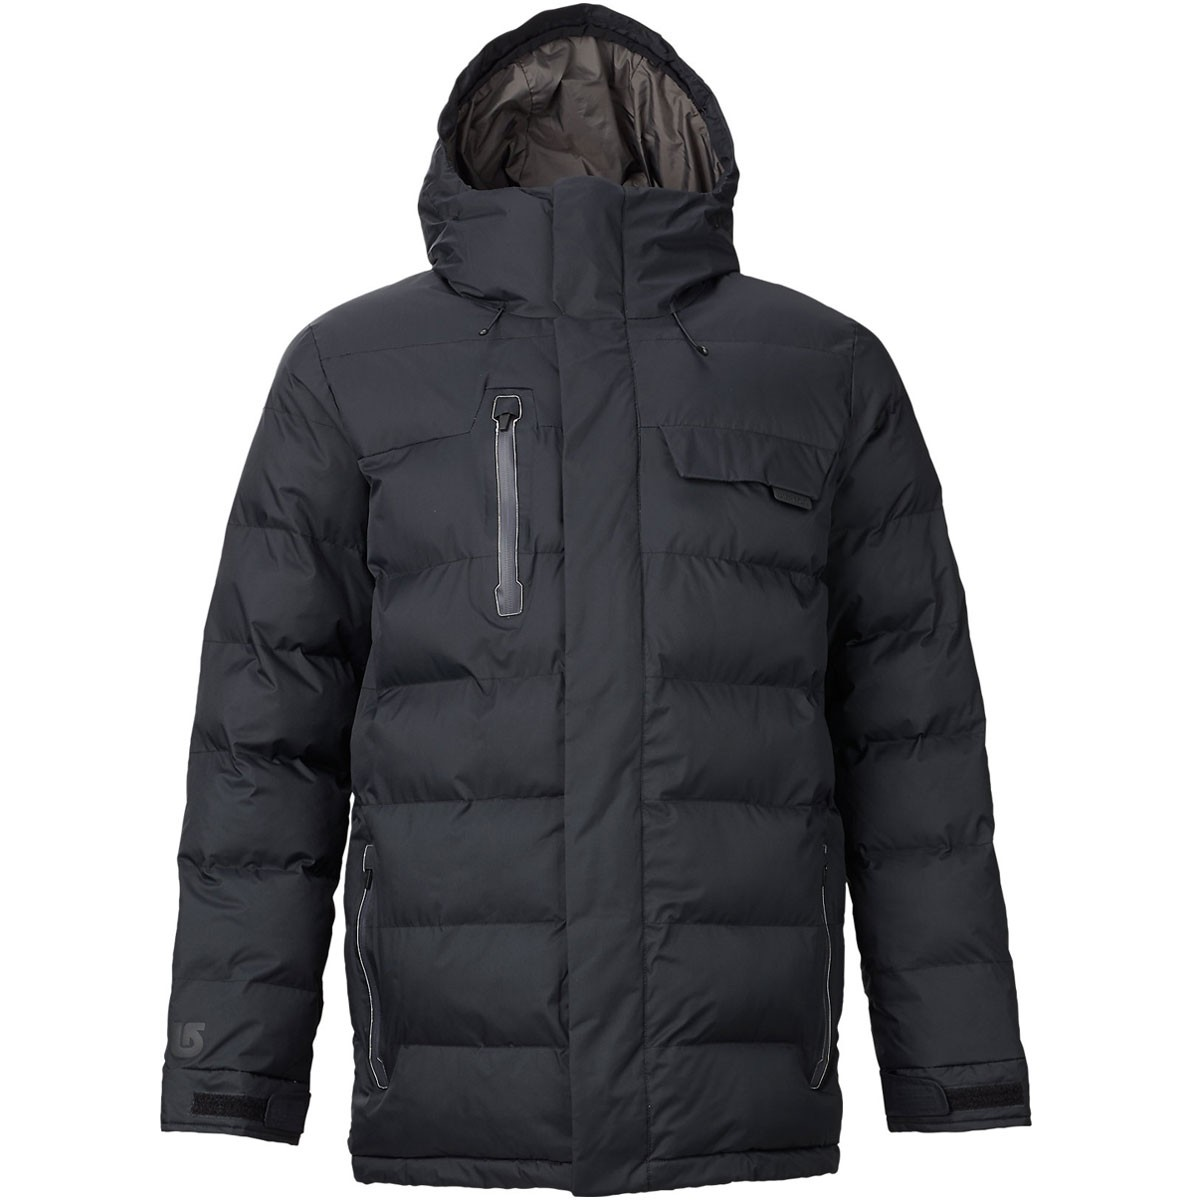 Snowboard Jackets Save cold hard cash when you shop for Mens Snowboard Jackets at trickytrydown2.tk No matter you size, style or shape we have got .